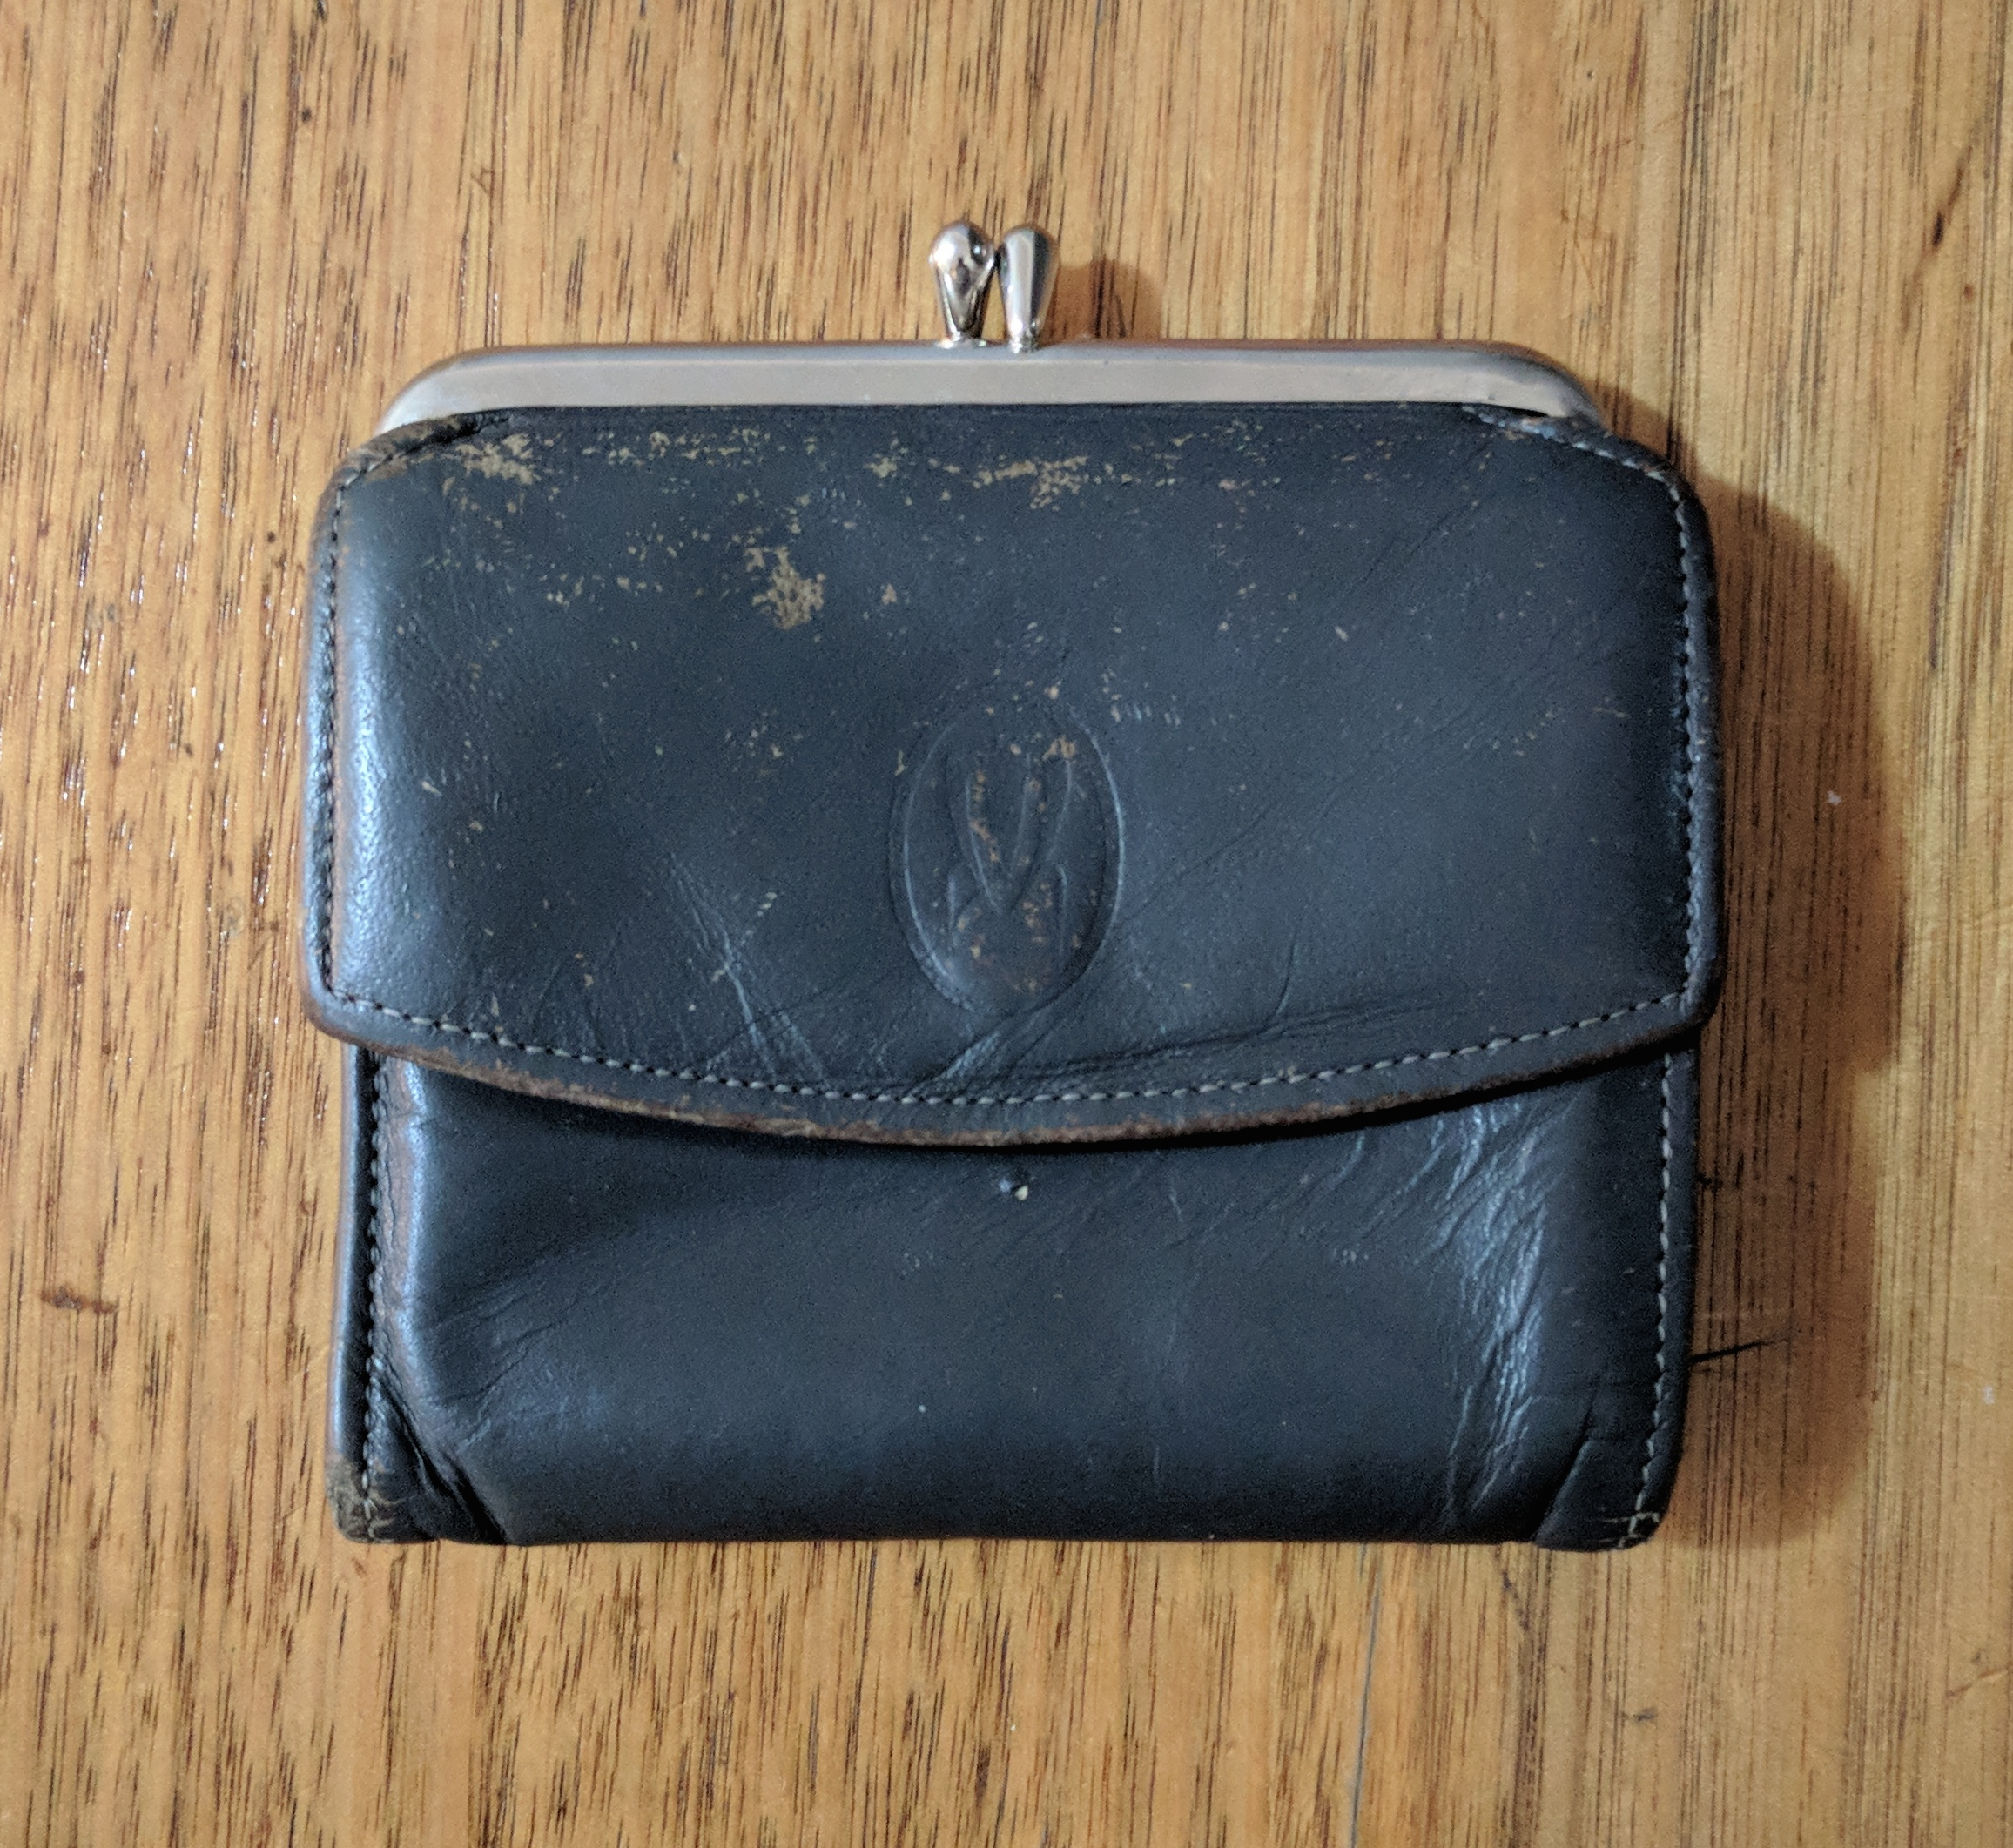 My old well used wallet